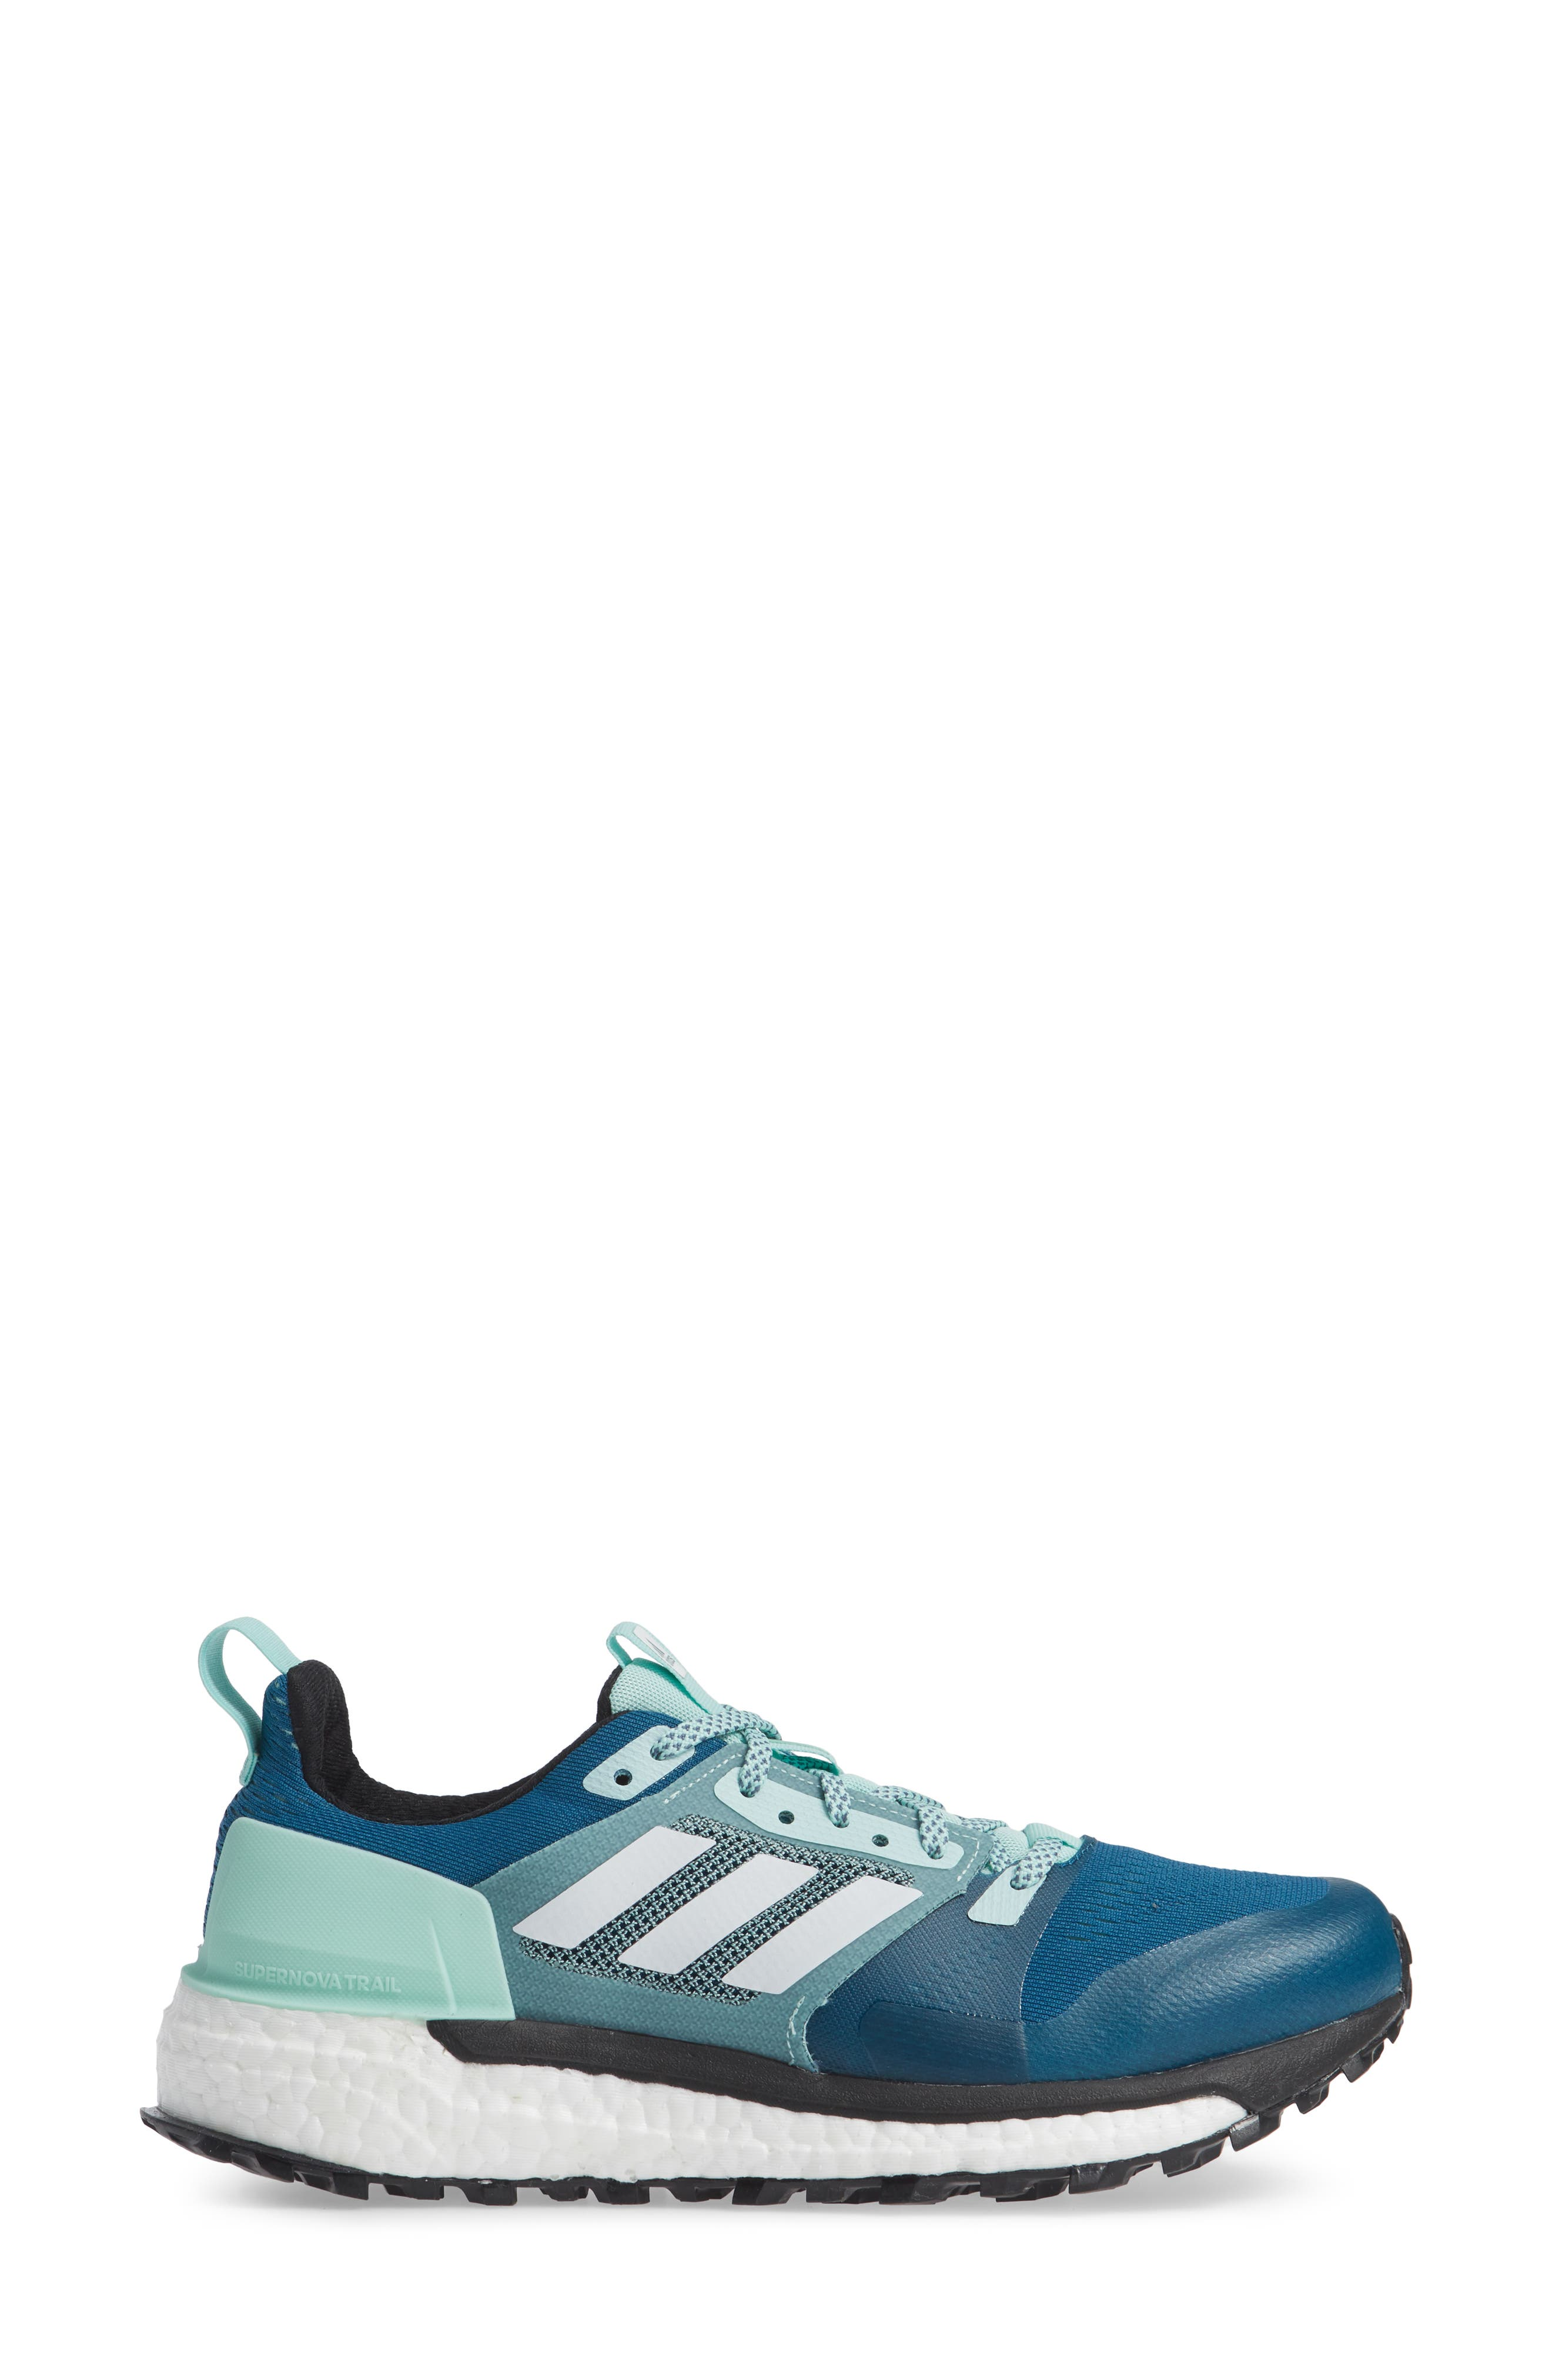 Supernova Trail Running Shoe,                             Alternate thumbnail 3, color,                             REAL TEAL/ WHITE/ CLEAR MINT